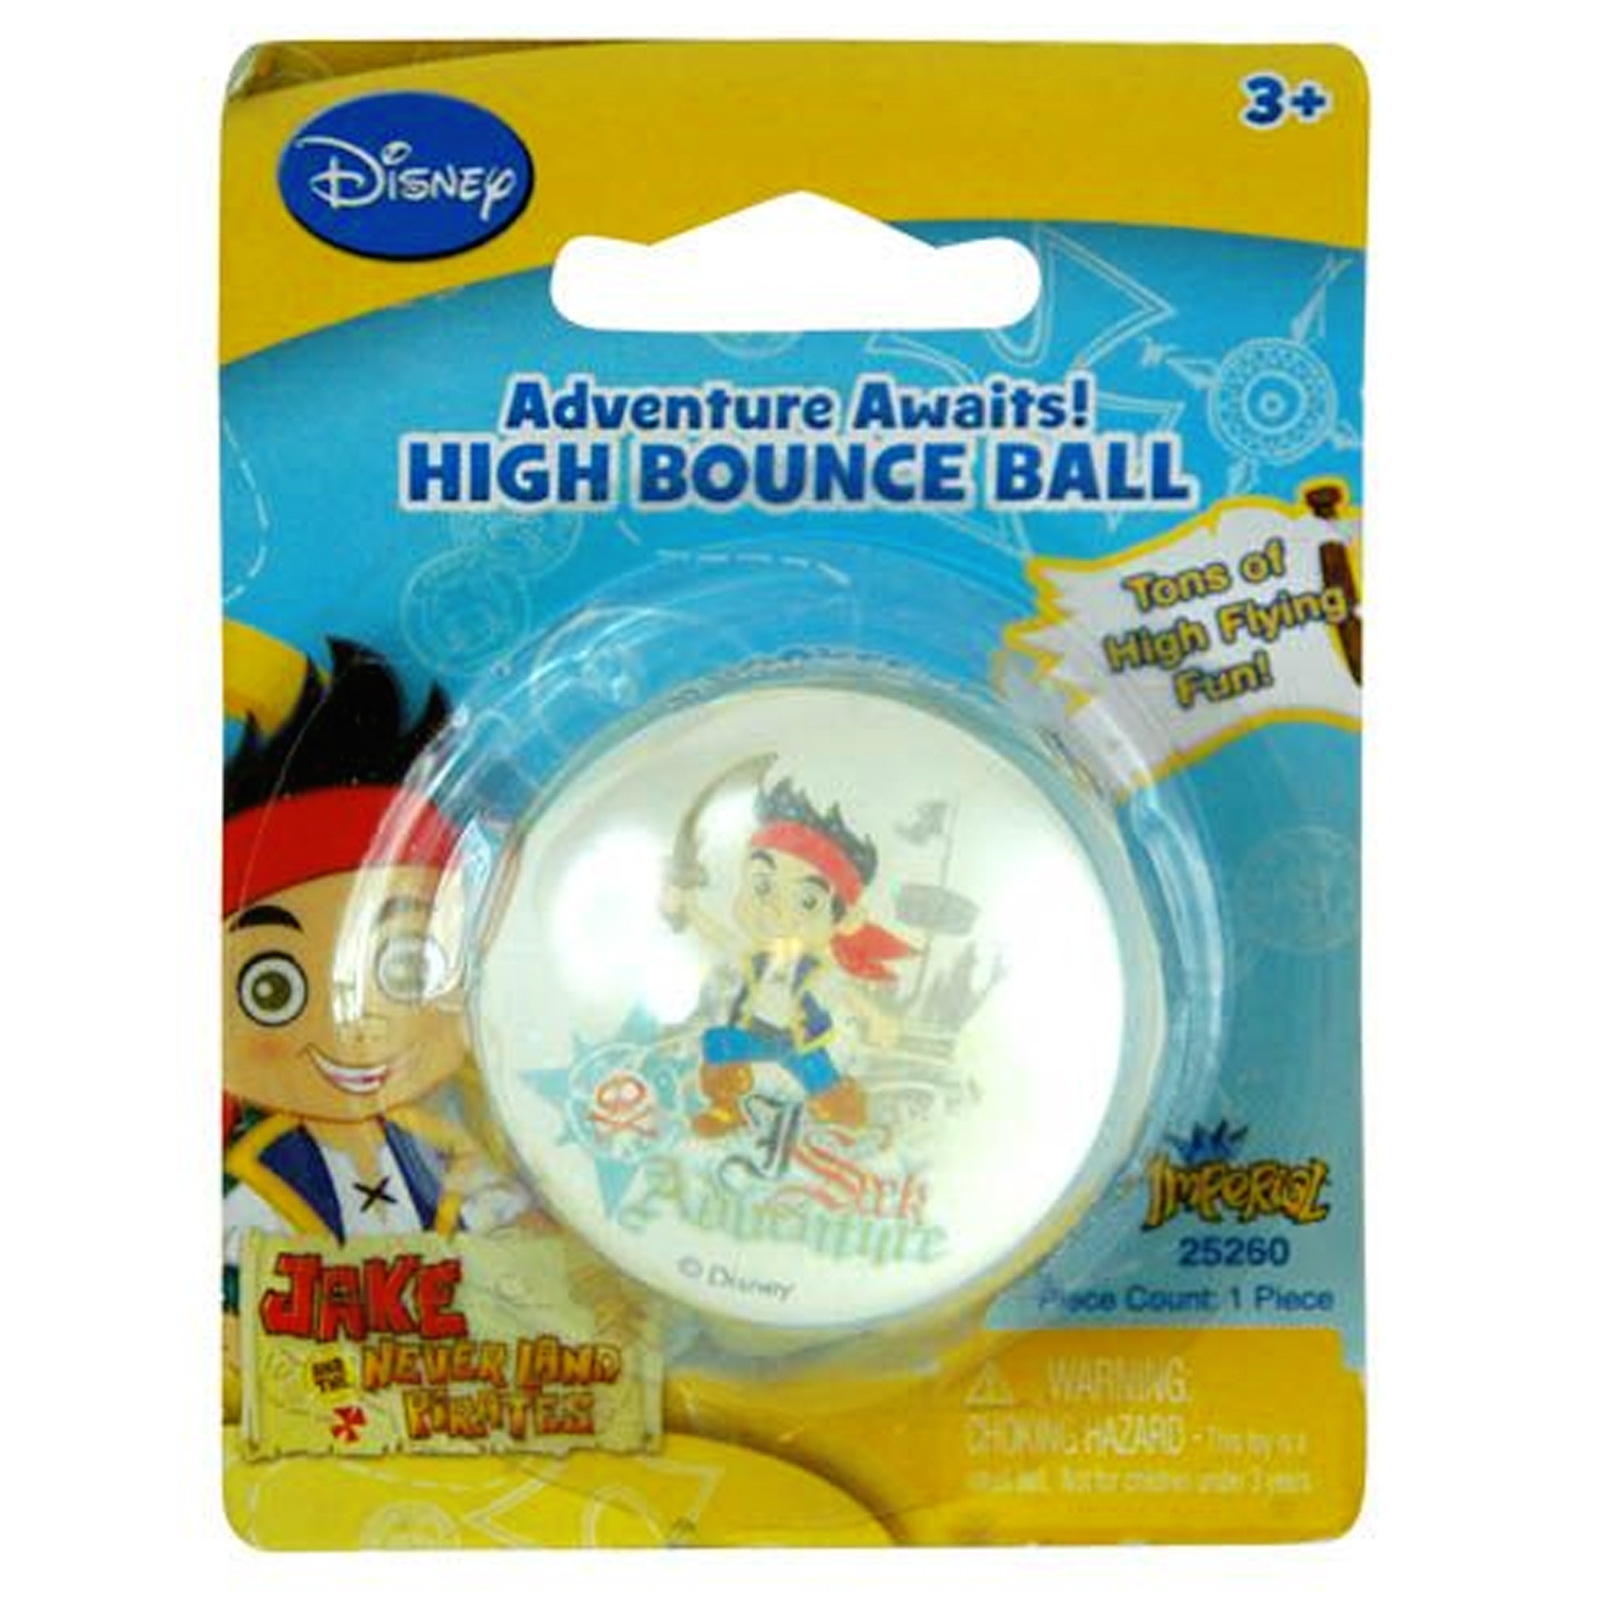 Bouncy Ball Disney Kids Toy Jake and the Never Land Pirates Theme